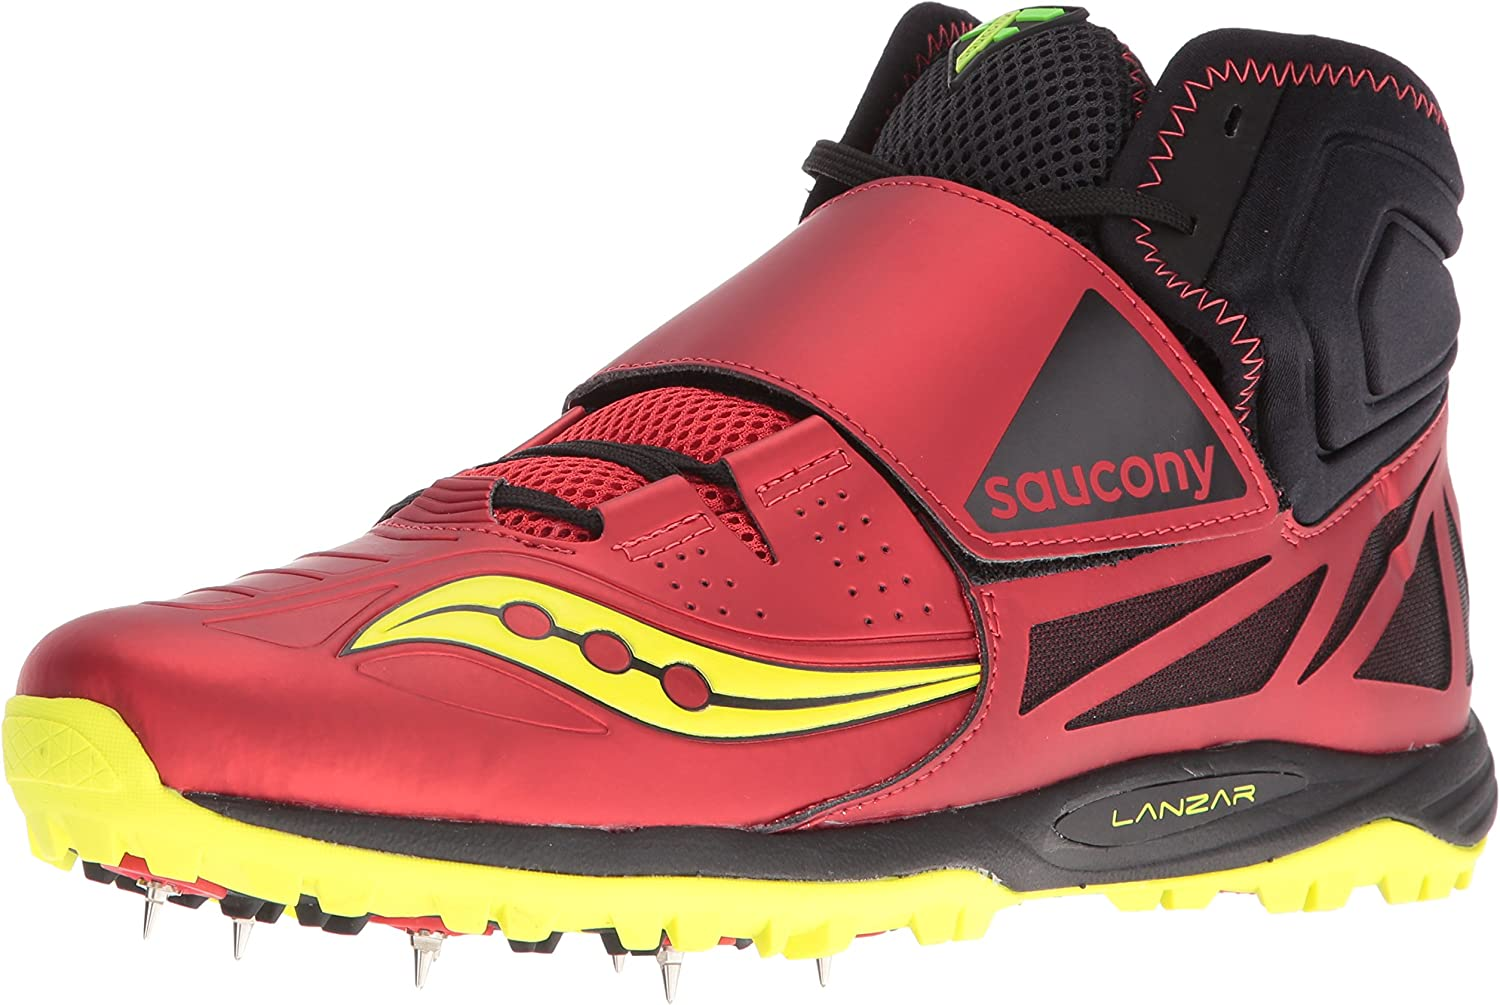 Saucony Mens Men's Lanzar Jav2 Track and Field shoes